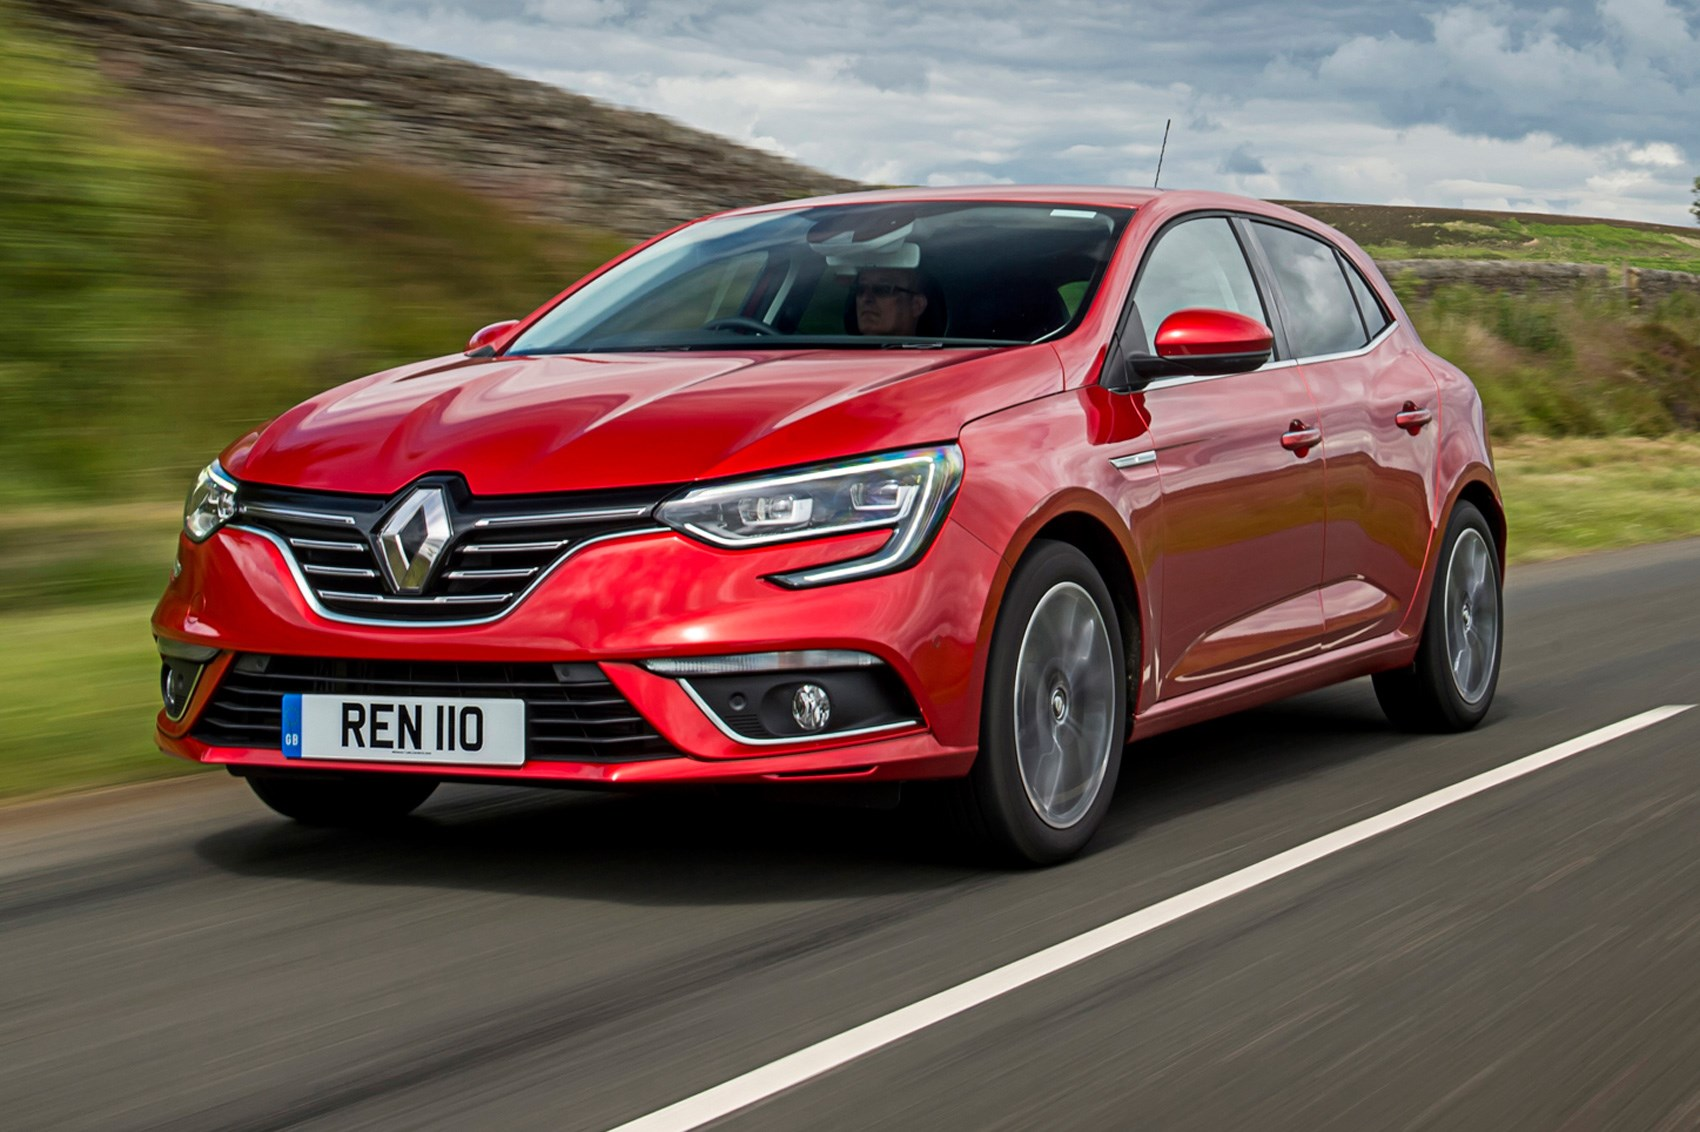 Renault Megane dCi 110 (2017) review | CAR Magazine